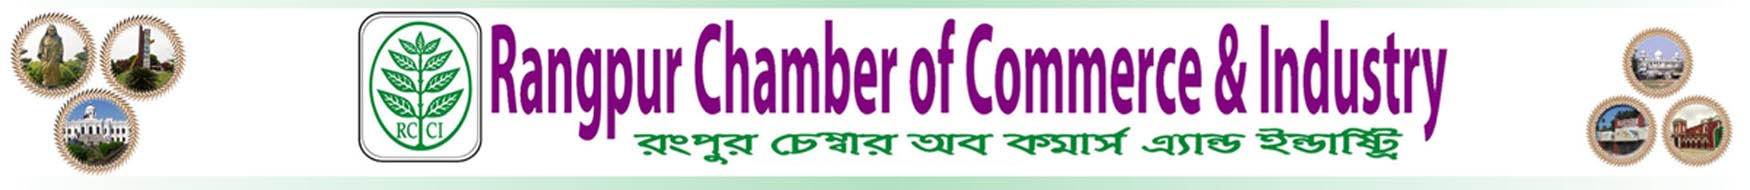 Rangpur Chamber Of Commerce & Industry